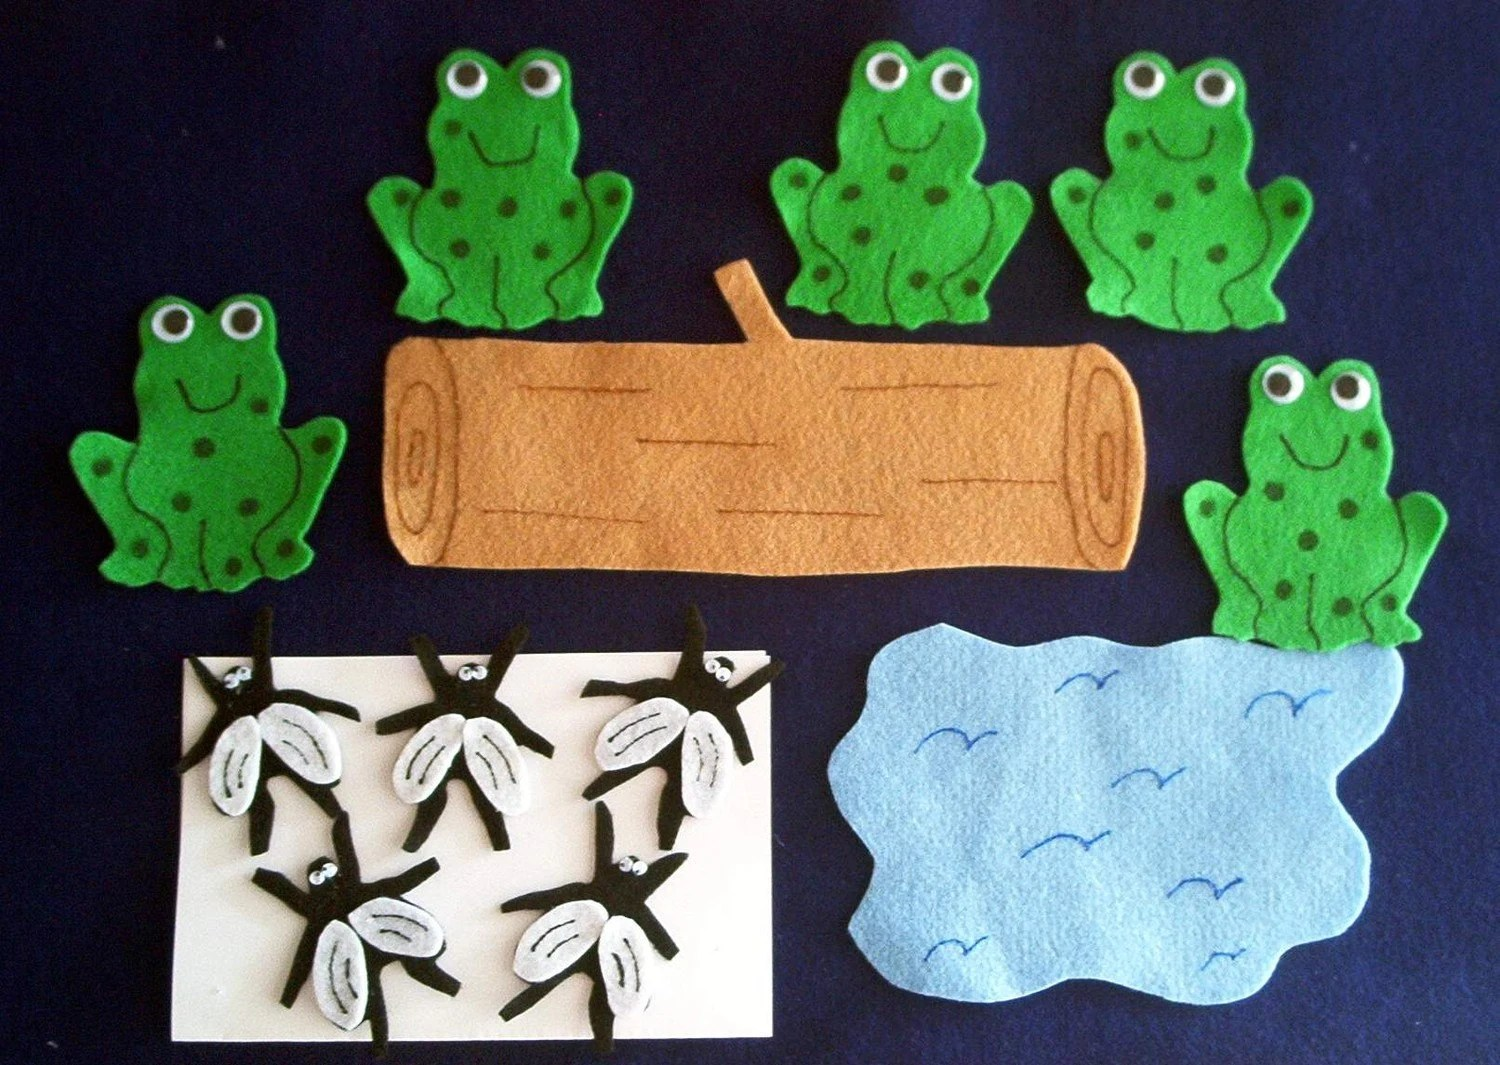 5 Green Speckled Frogs Flannel Board Felt Story By